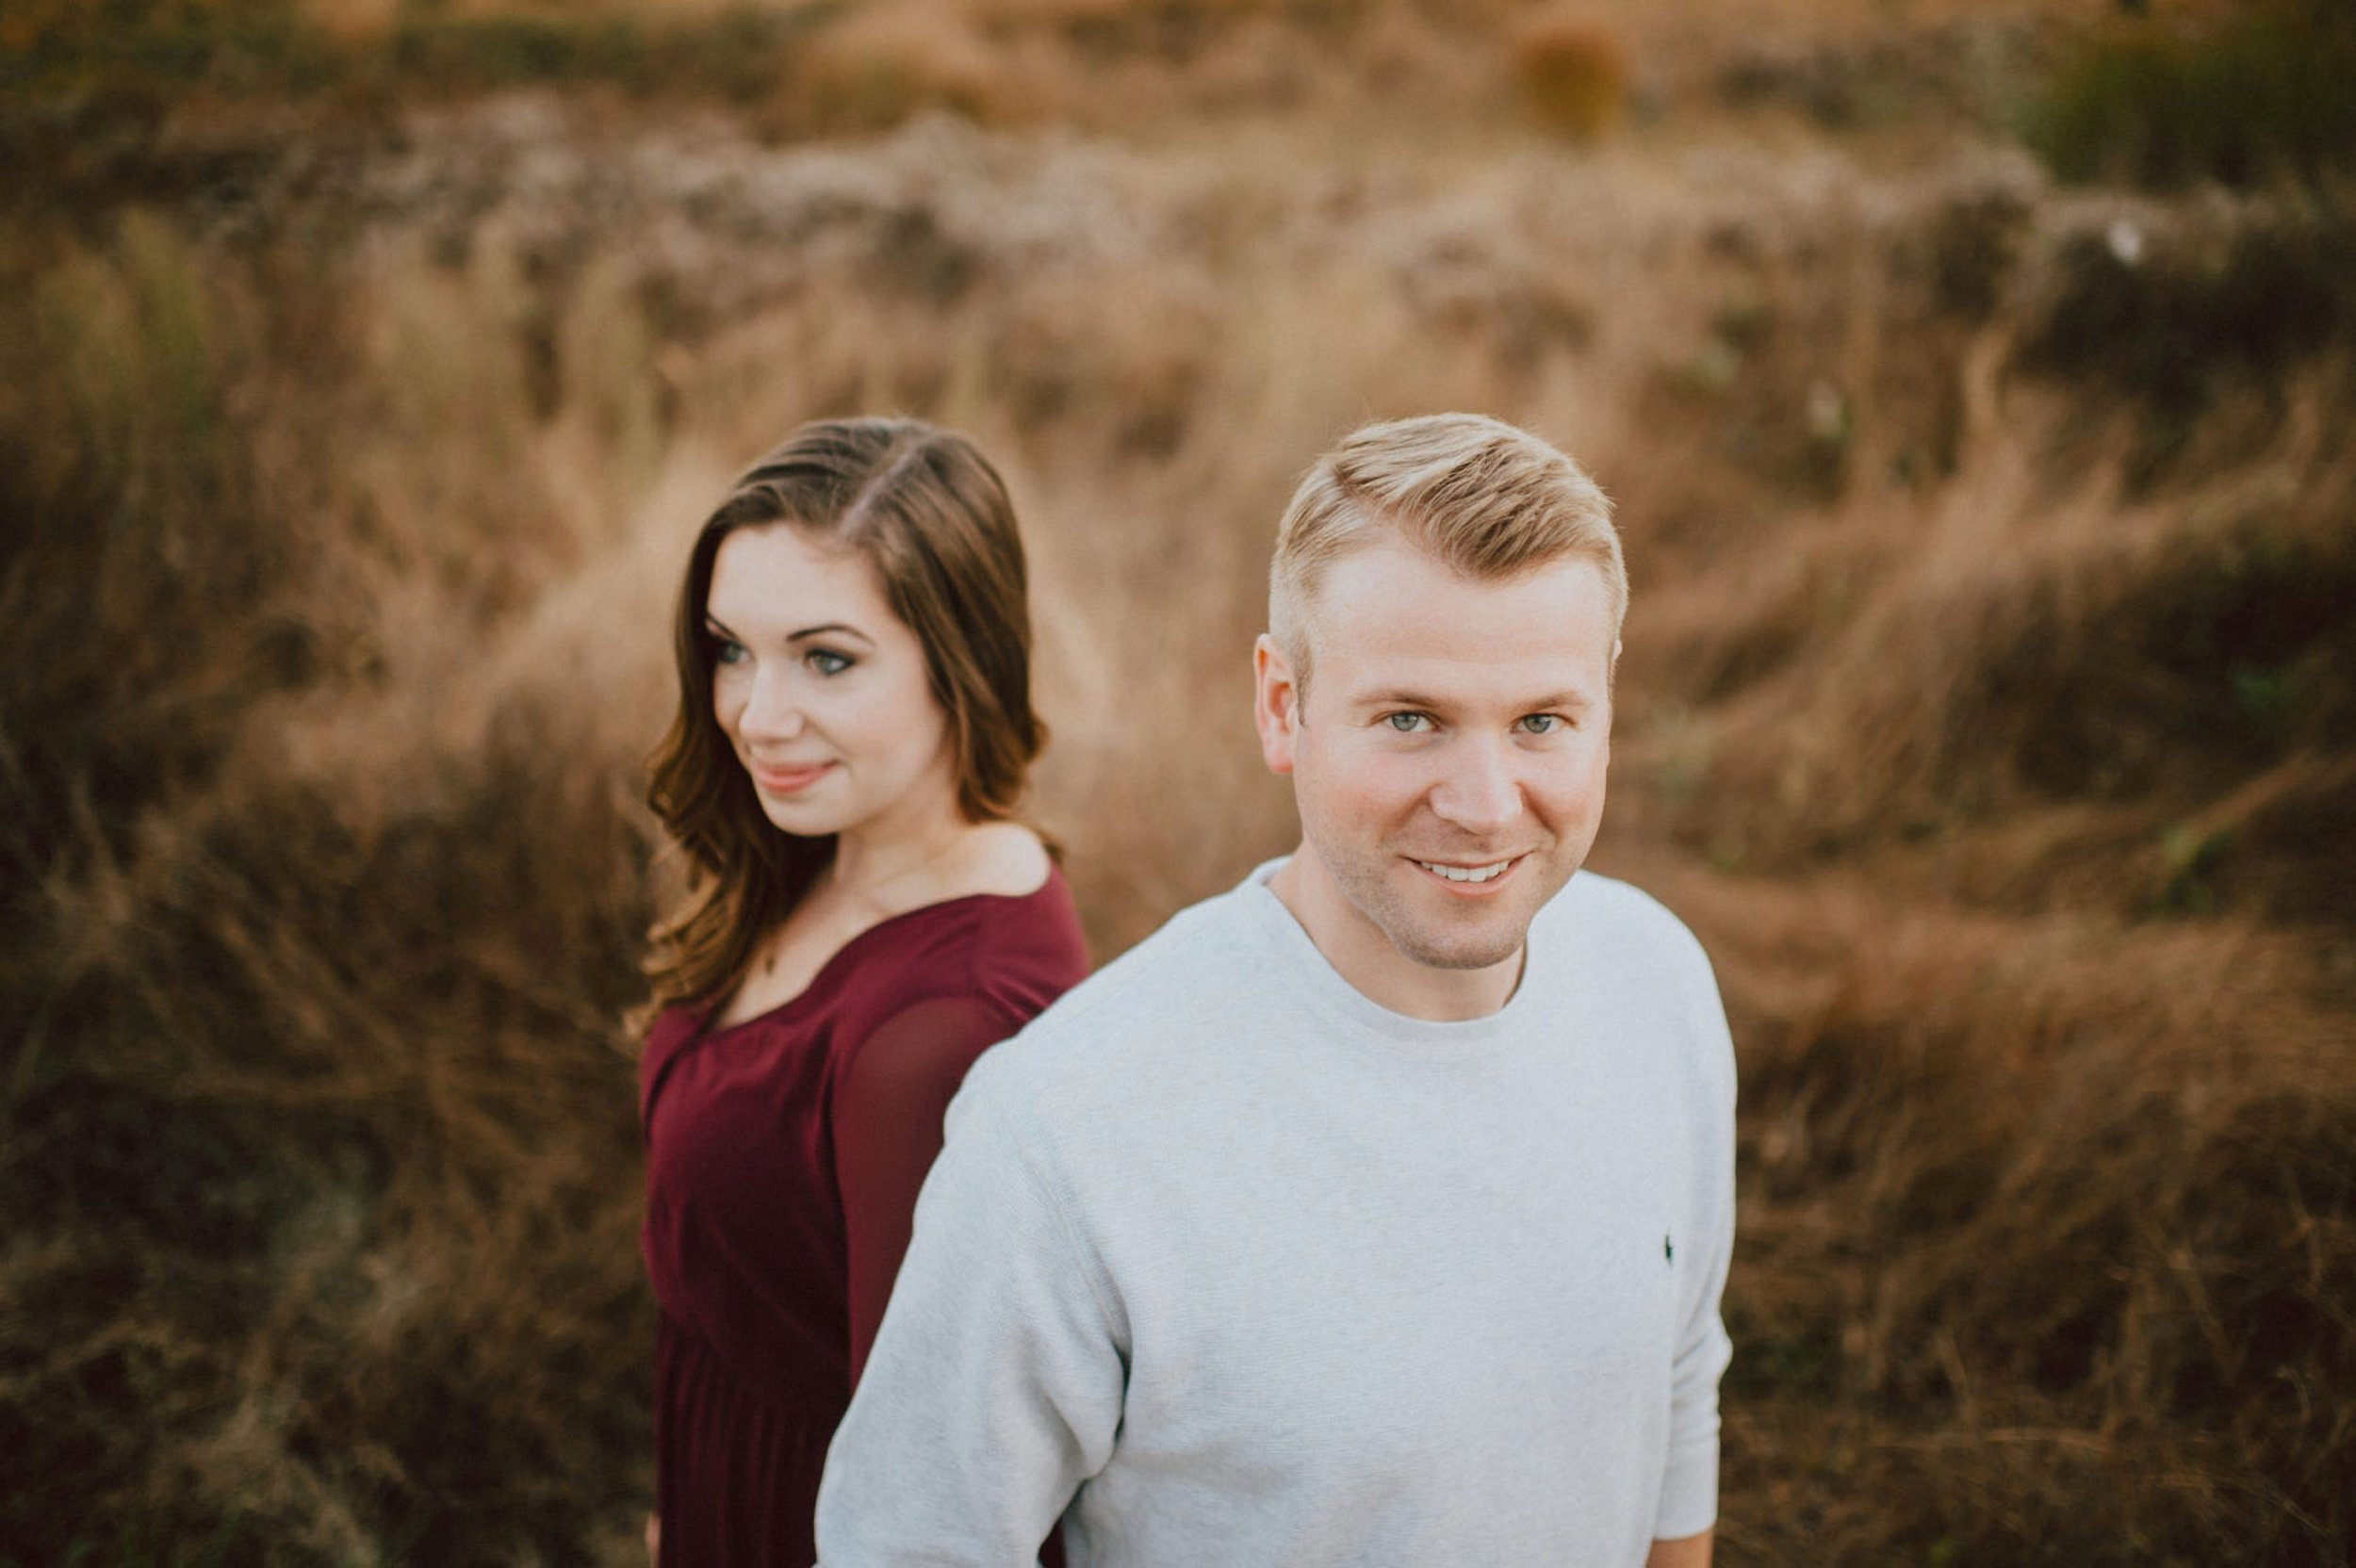 valley-forge-park-engagement-session-7.jpg